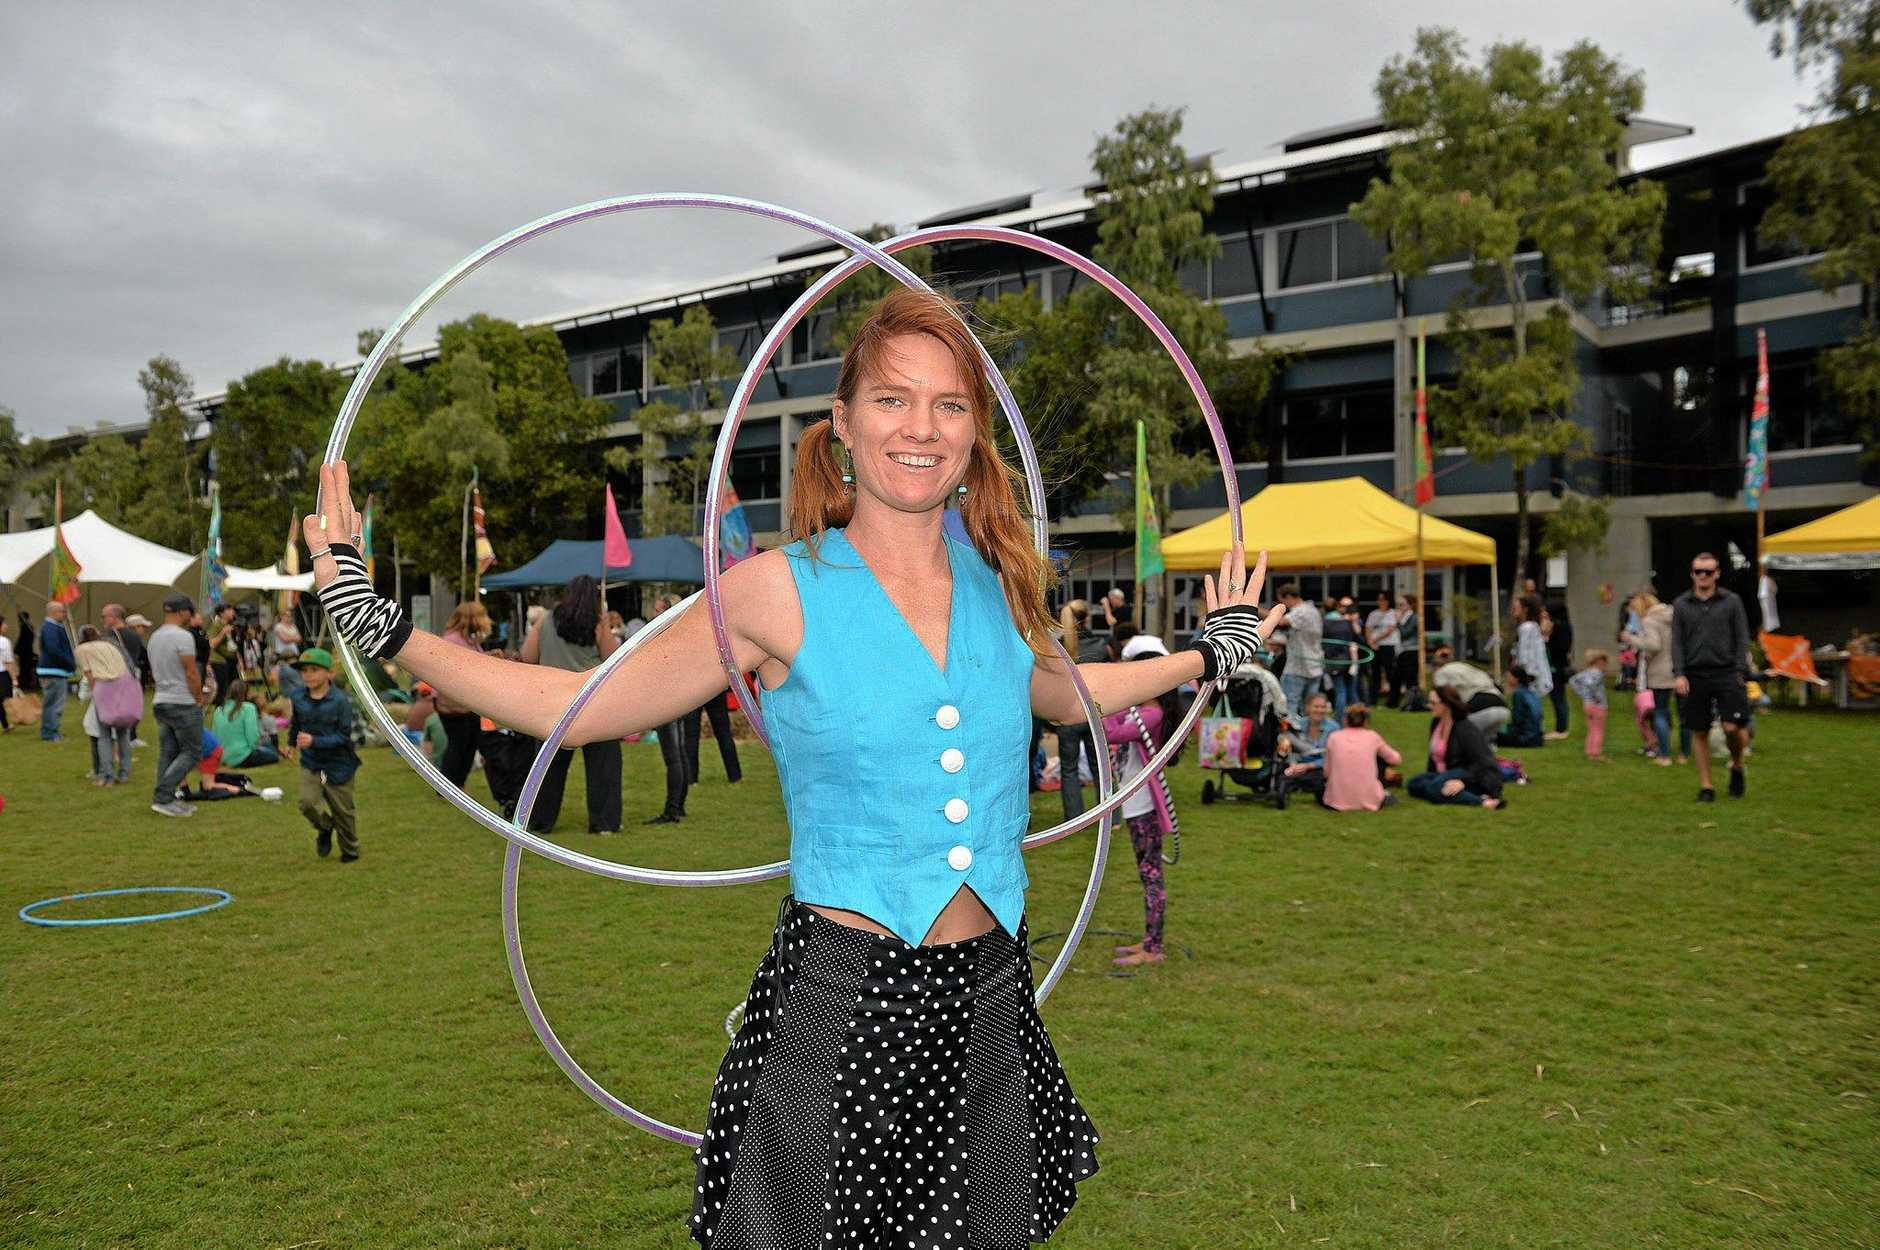 World Environment Day Festival at the University of the Sunshine Coast with Jesse Favell from Sunshine's Hoop Love. The evnt has shifted back to Cotton Tree this year. Photo: Warren Lynam / Sunshine Coast Daily